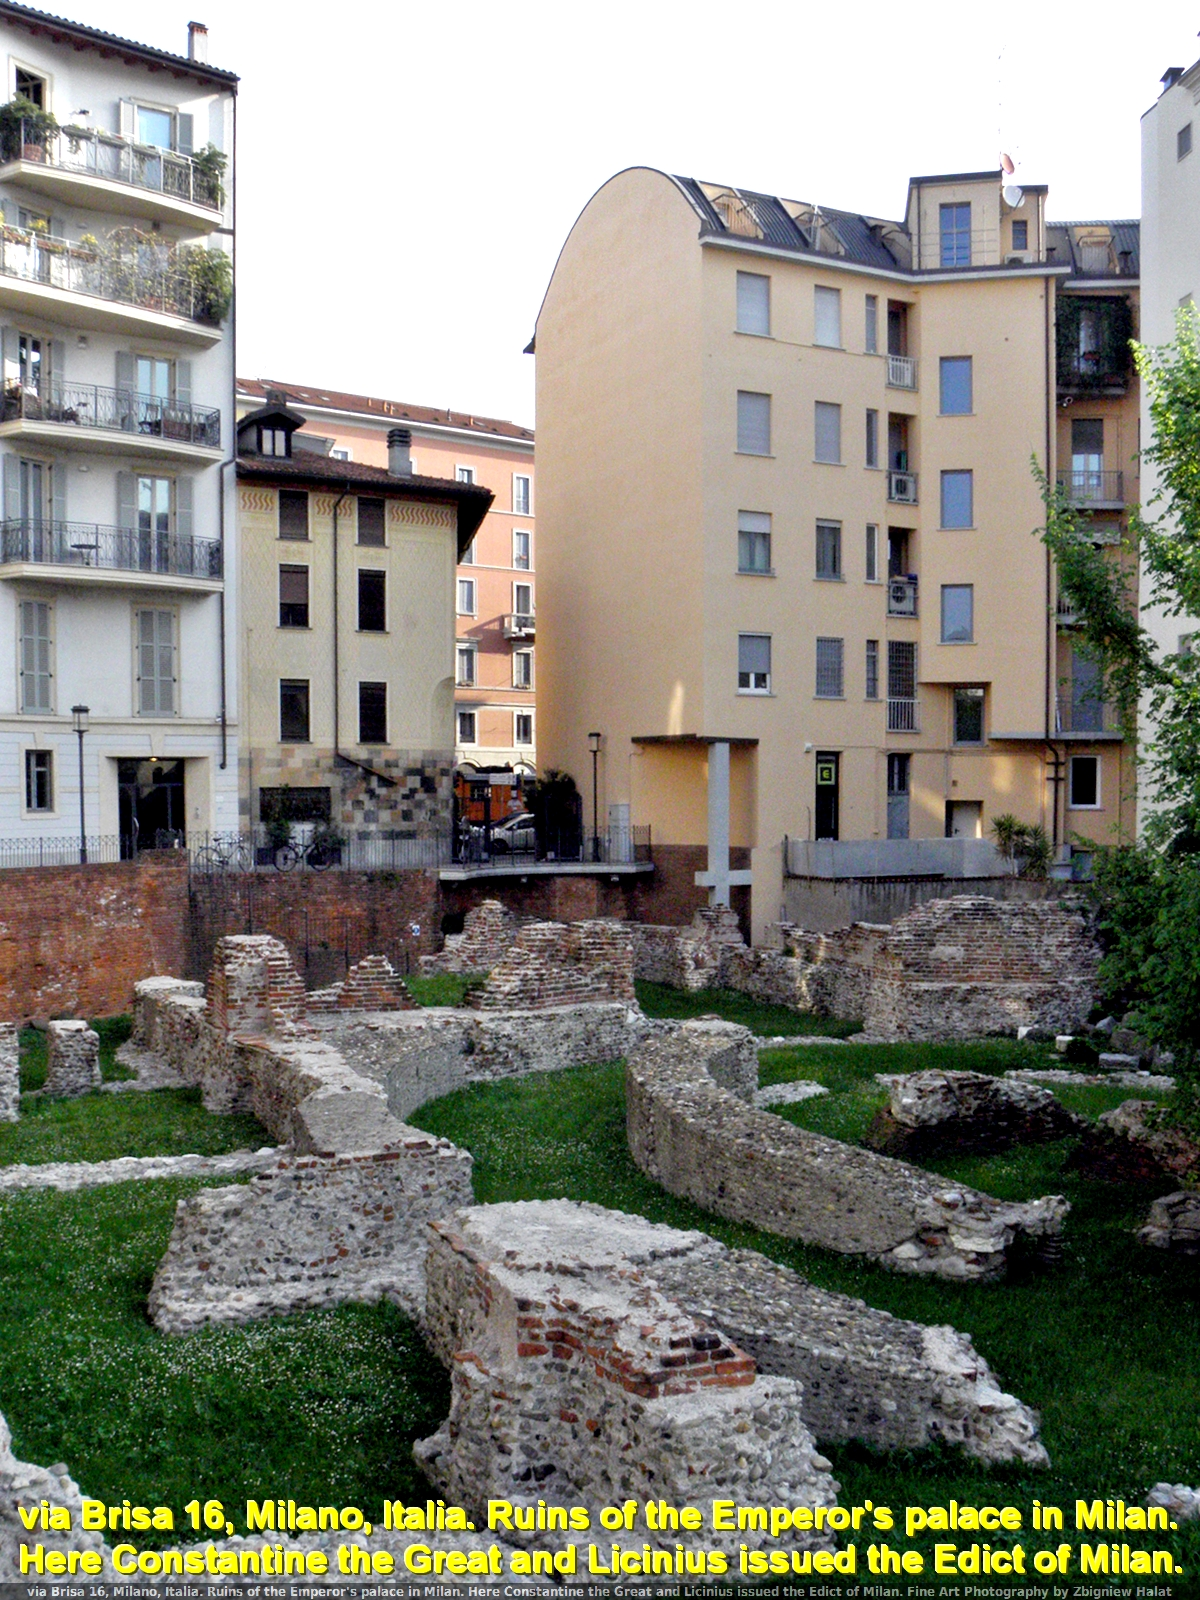 via Brisa 16, Milano, Italia. Ruins of the Emperor's palace in Milan. Here Constantine the Great and Licinius issued the Edict of Milan (EDICTUM MEDIOLANENSE). Fine Art Photography by Zbigniew Halat